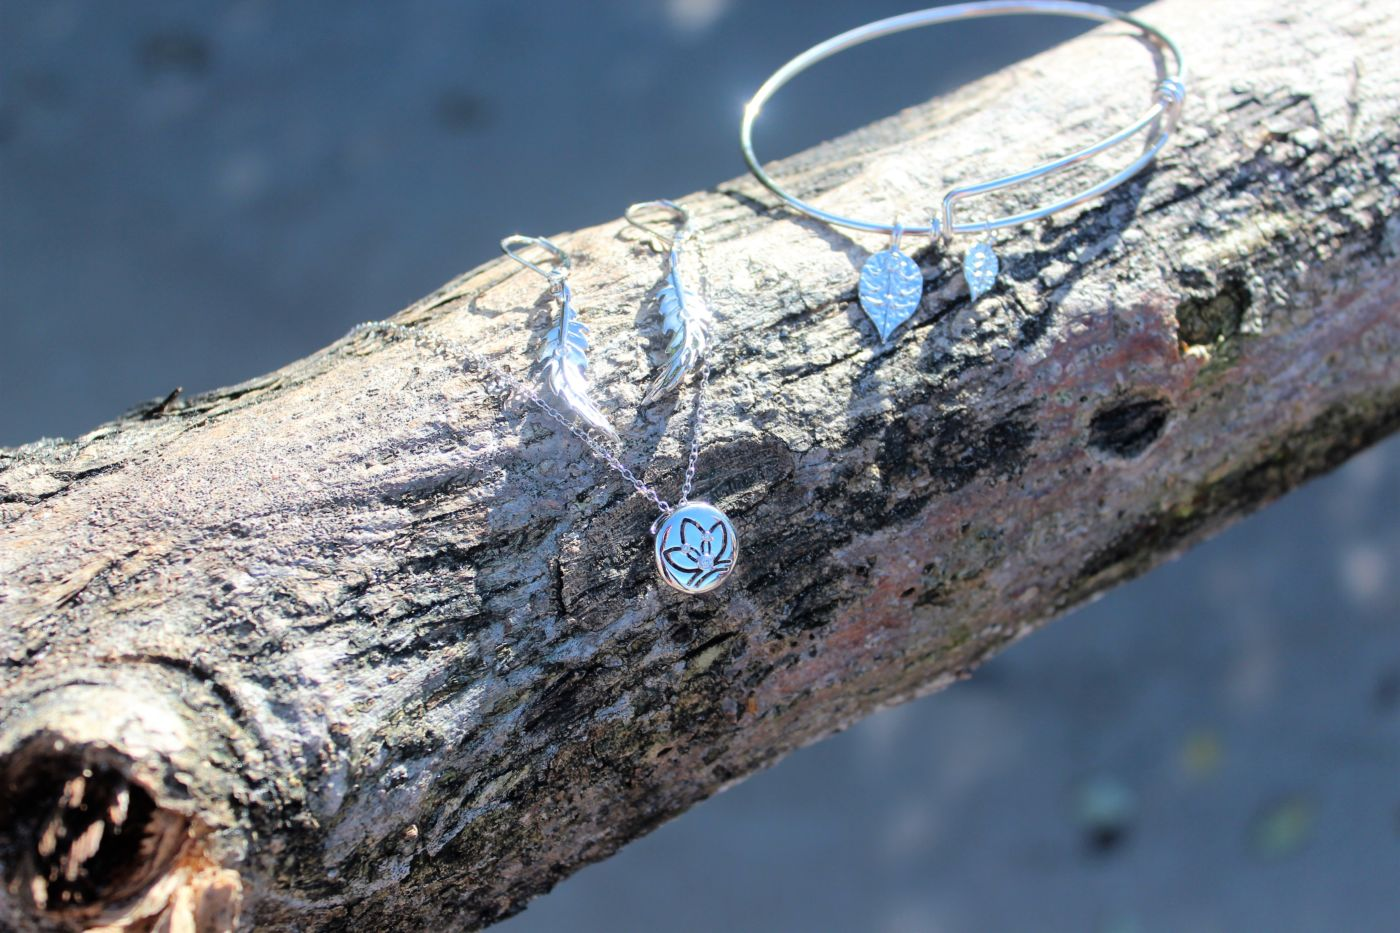 Boho by Spence Diamonds review, boho lifestyle, boho fashion, new jewelry fall 2017, ethical diamonds, environmentally sustainable diamonds, Boho Jewelry, Sterling Silver Jewelry, affordable Boho By Spence Diamond Jewelry, Artisan Created Diamonds, Boho Collection